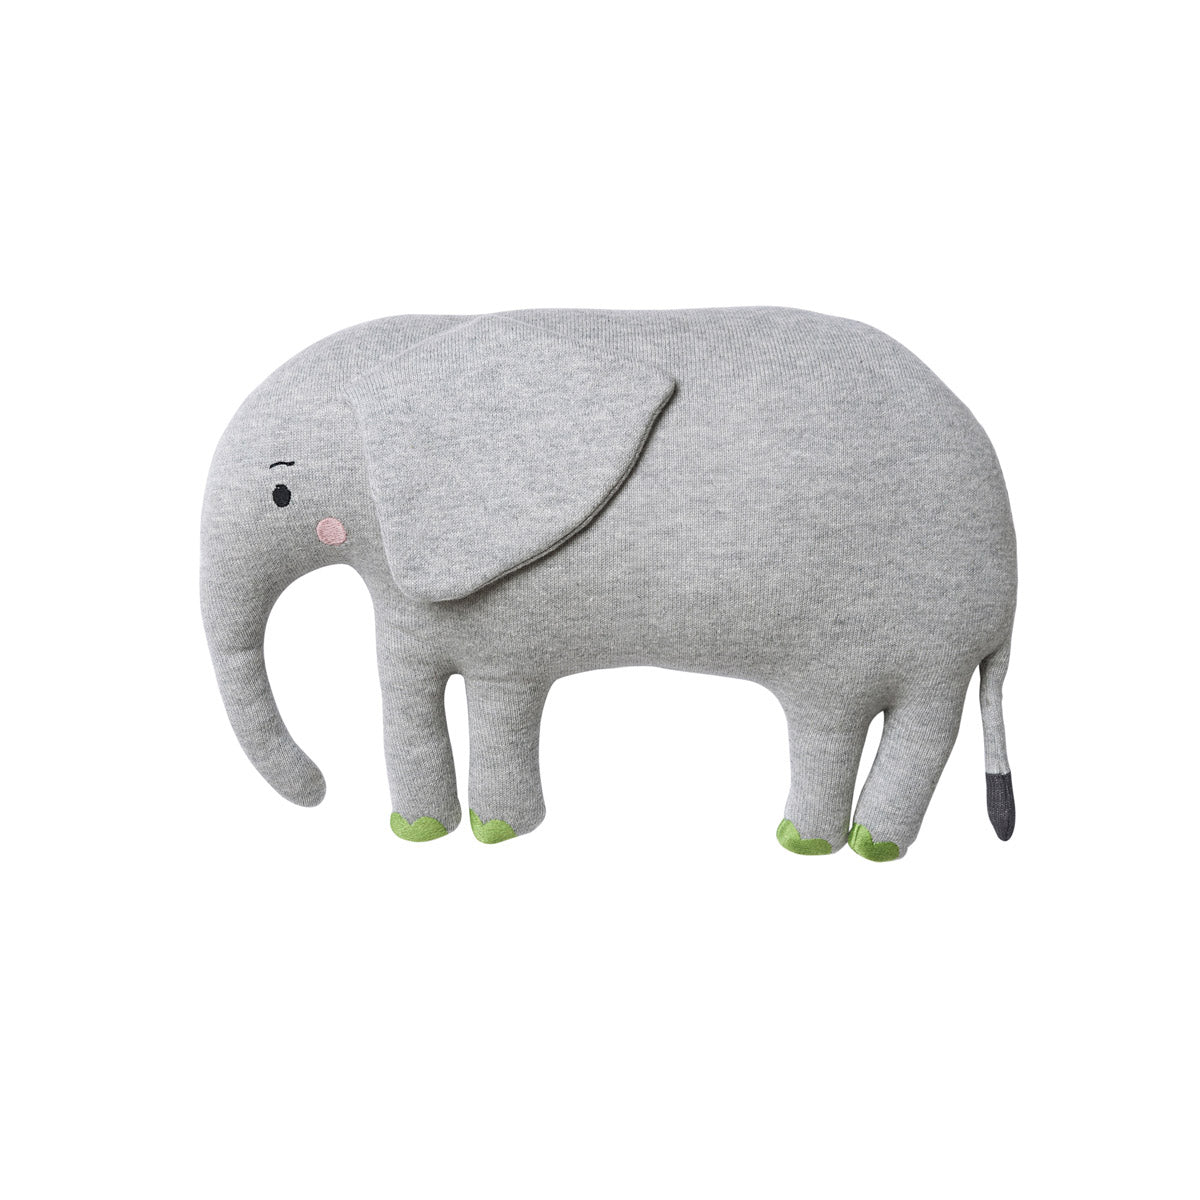 Elephant Shaped Cushion